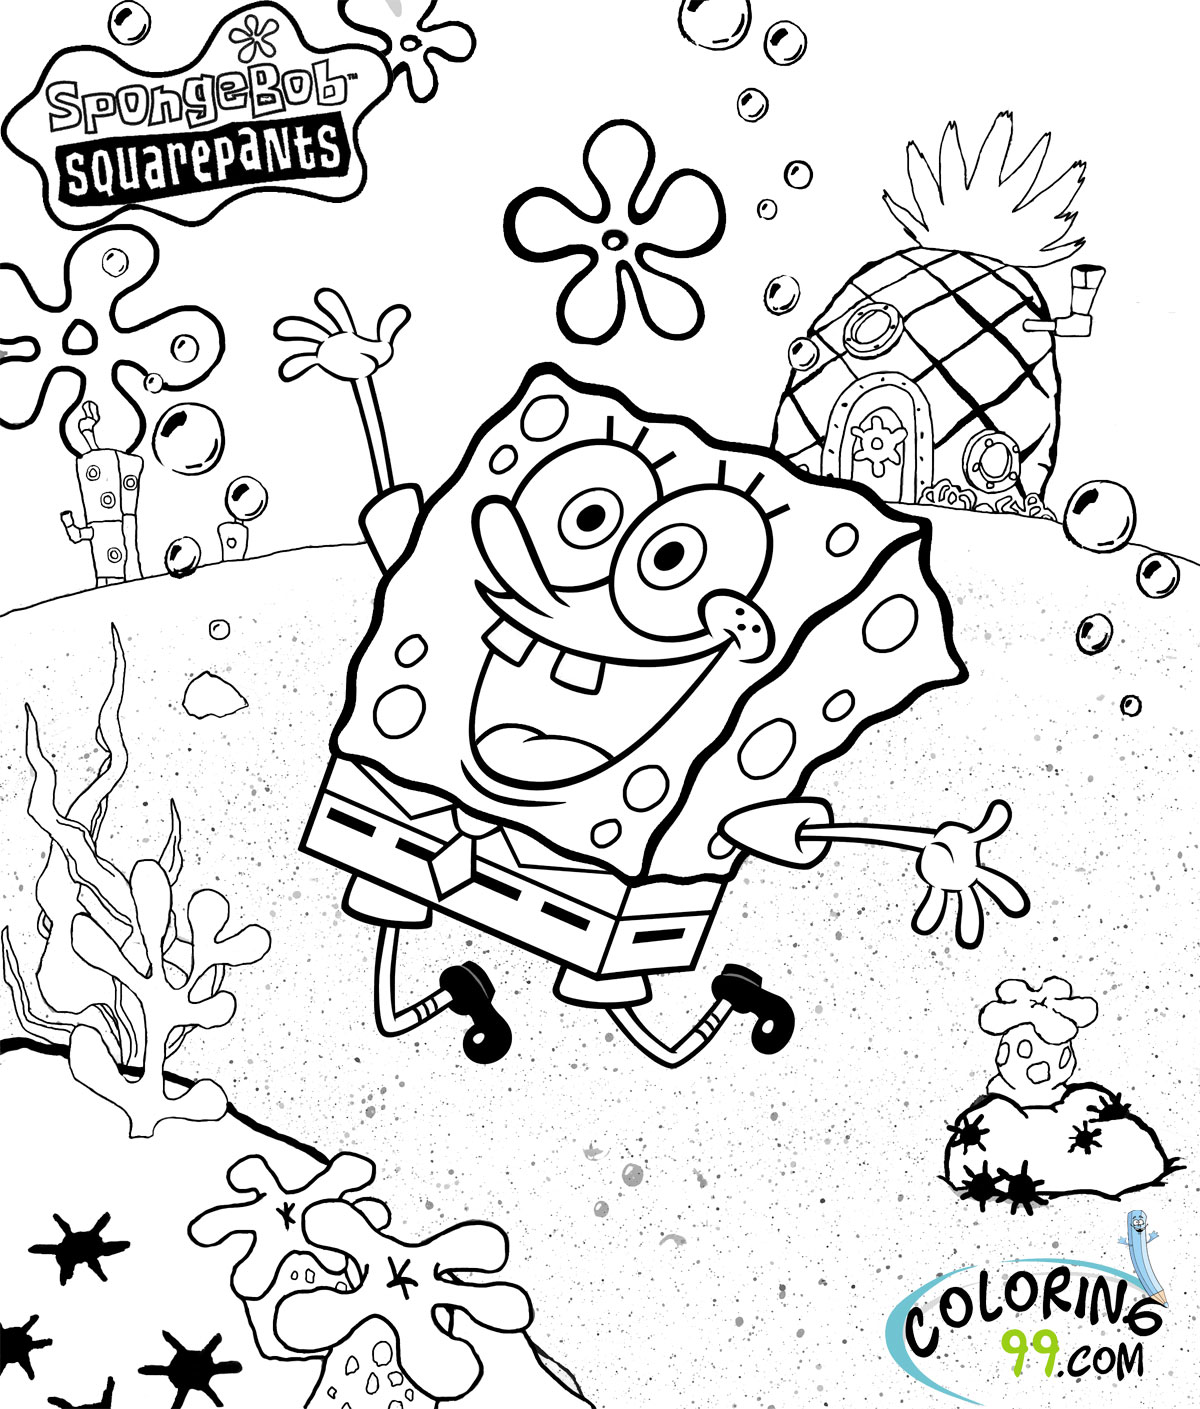 spongebob coloring pages free printable spongebob coloring pages for kids cool2bkids pages spongebob free coloring